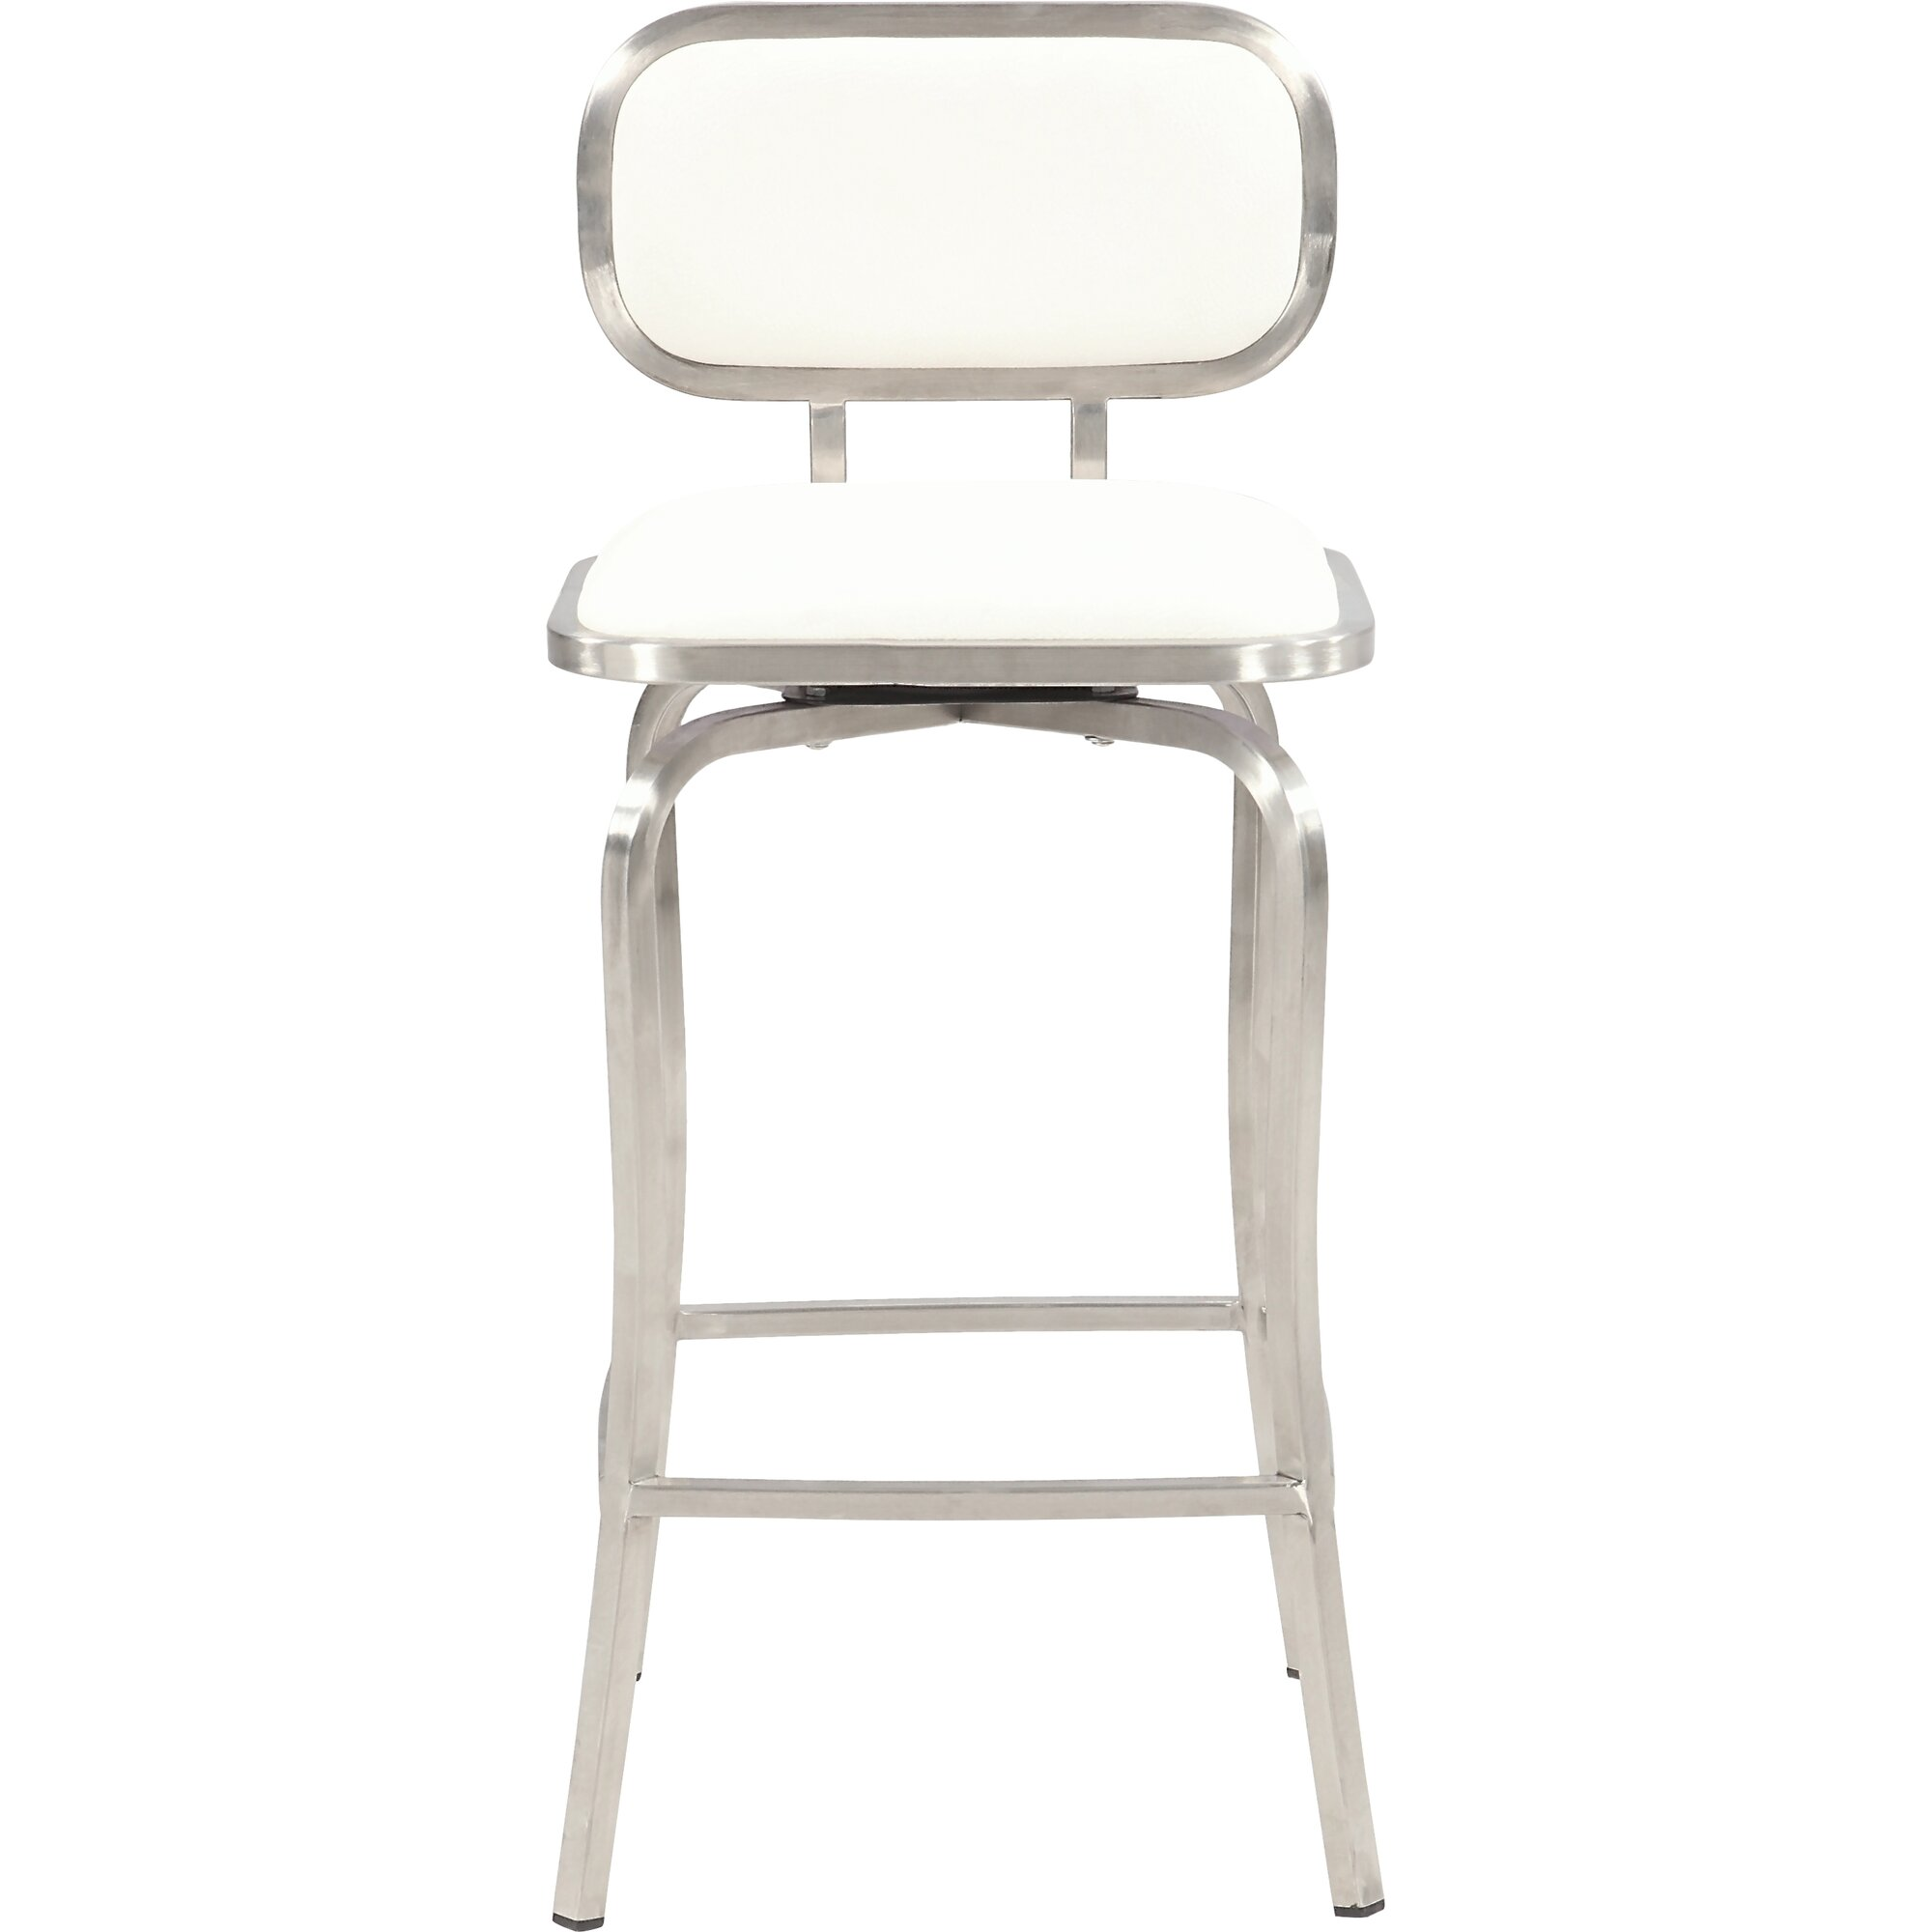 Modern kitchen bar stools - Modern 25 98 Swivel Bar Stool